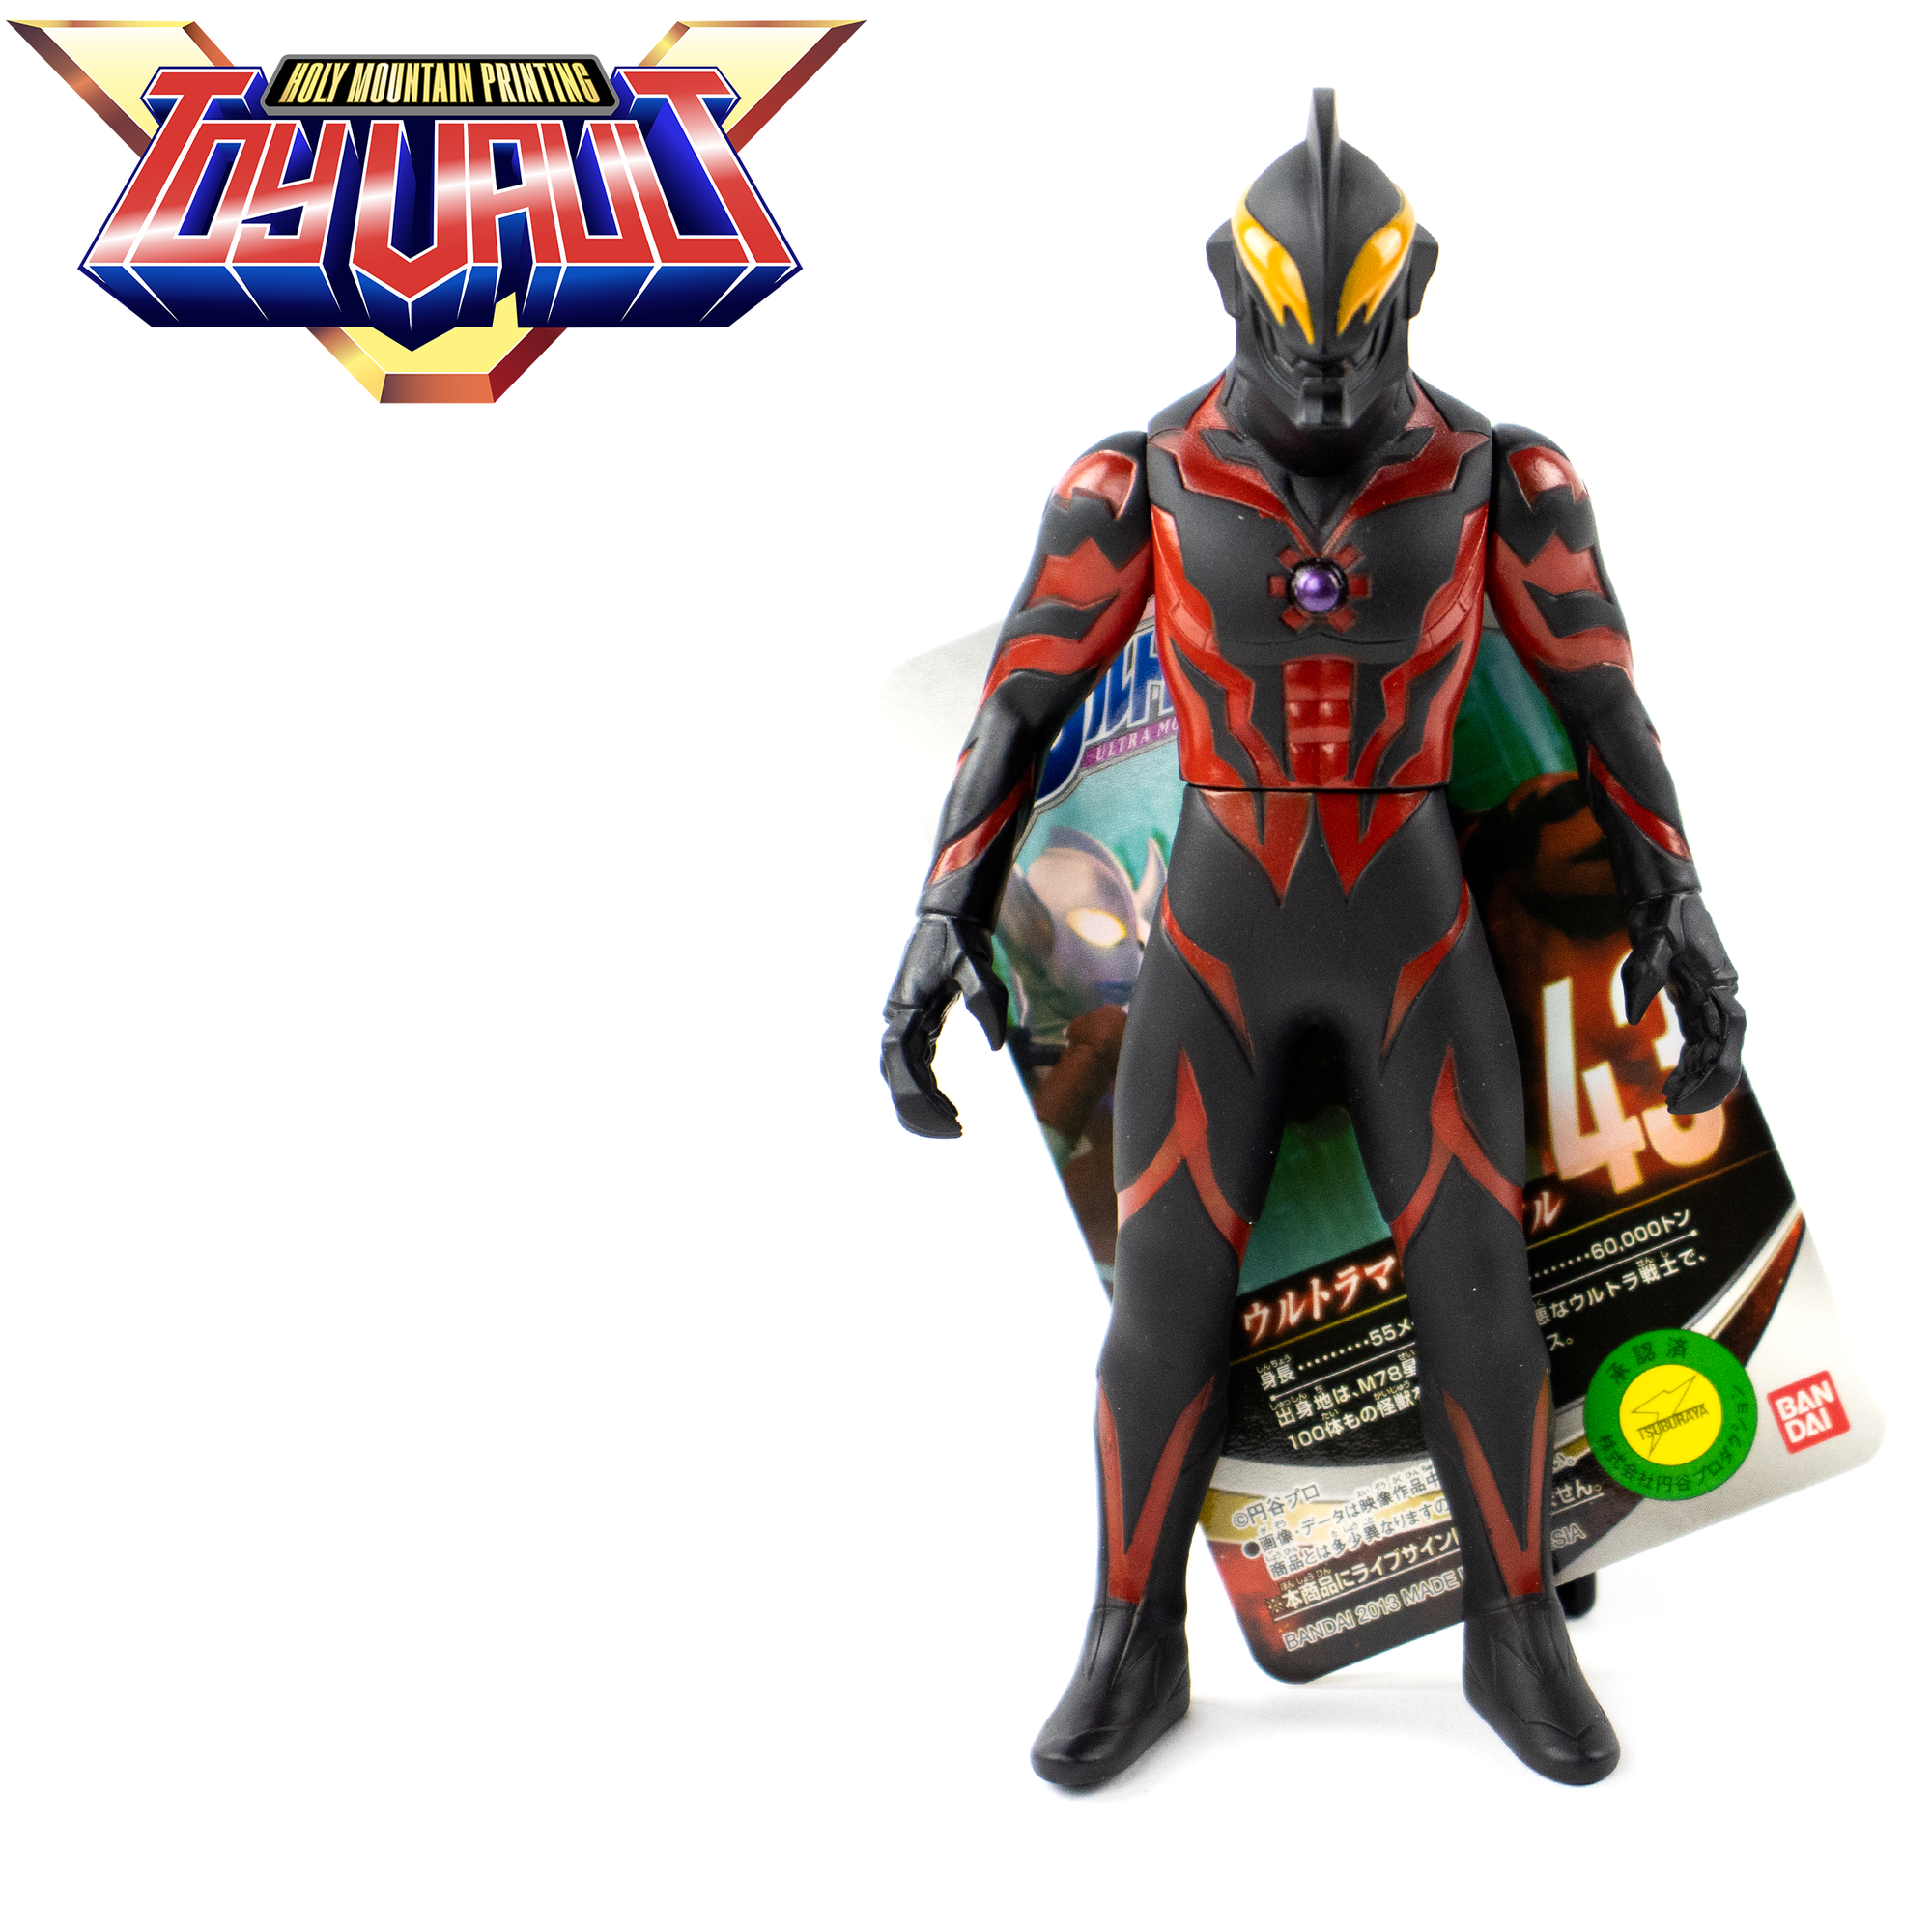 BANDAI - ULTRA MONSTER SERIES #43: ULTRAMAN BELIAL